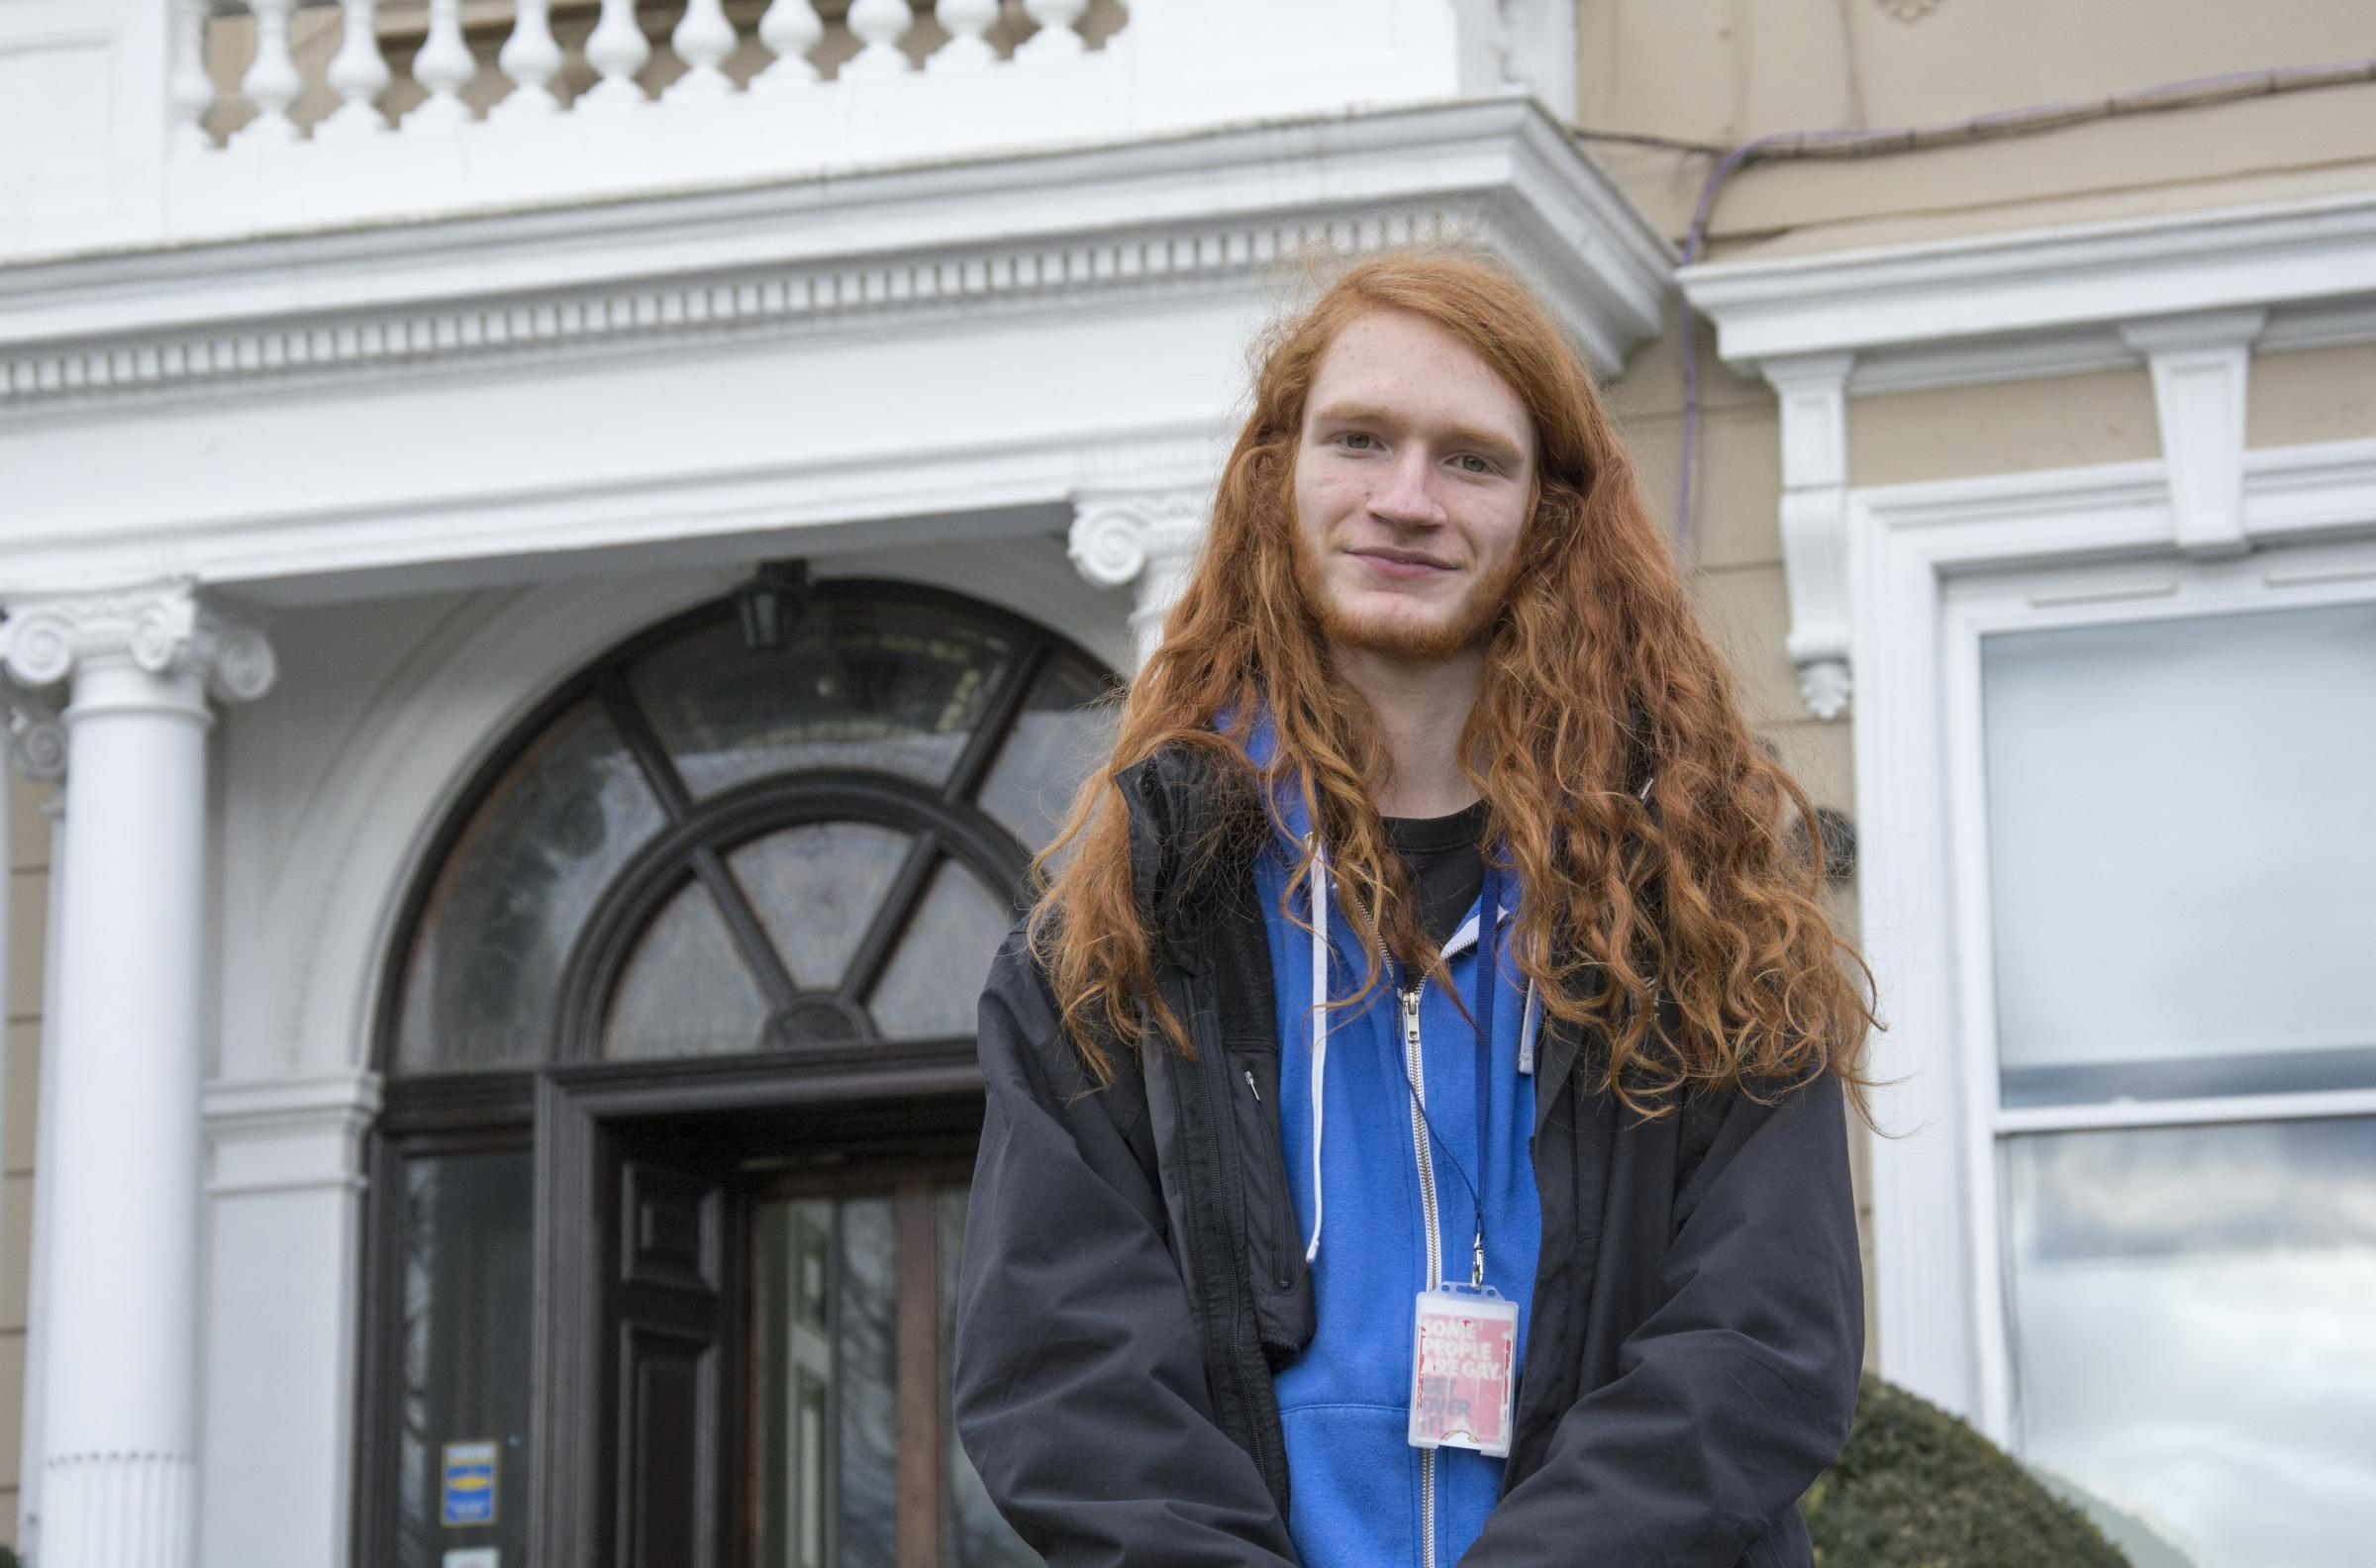 Carnun Marcus-Page has been offered a free scholarship to study physics at Dartmouth College